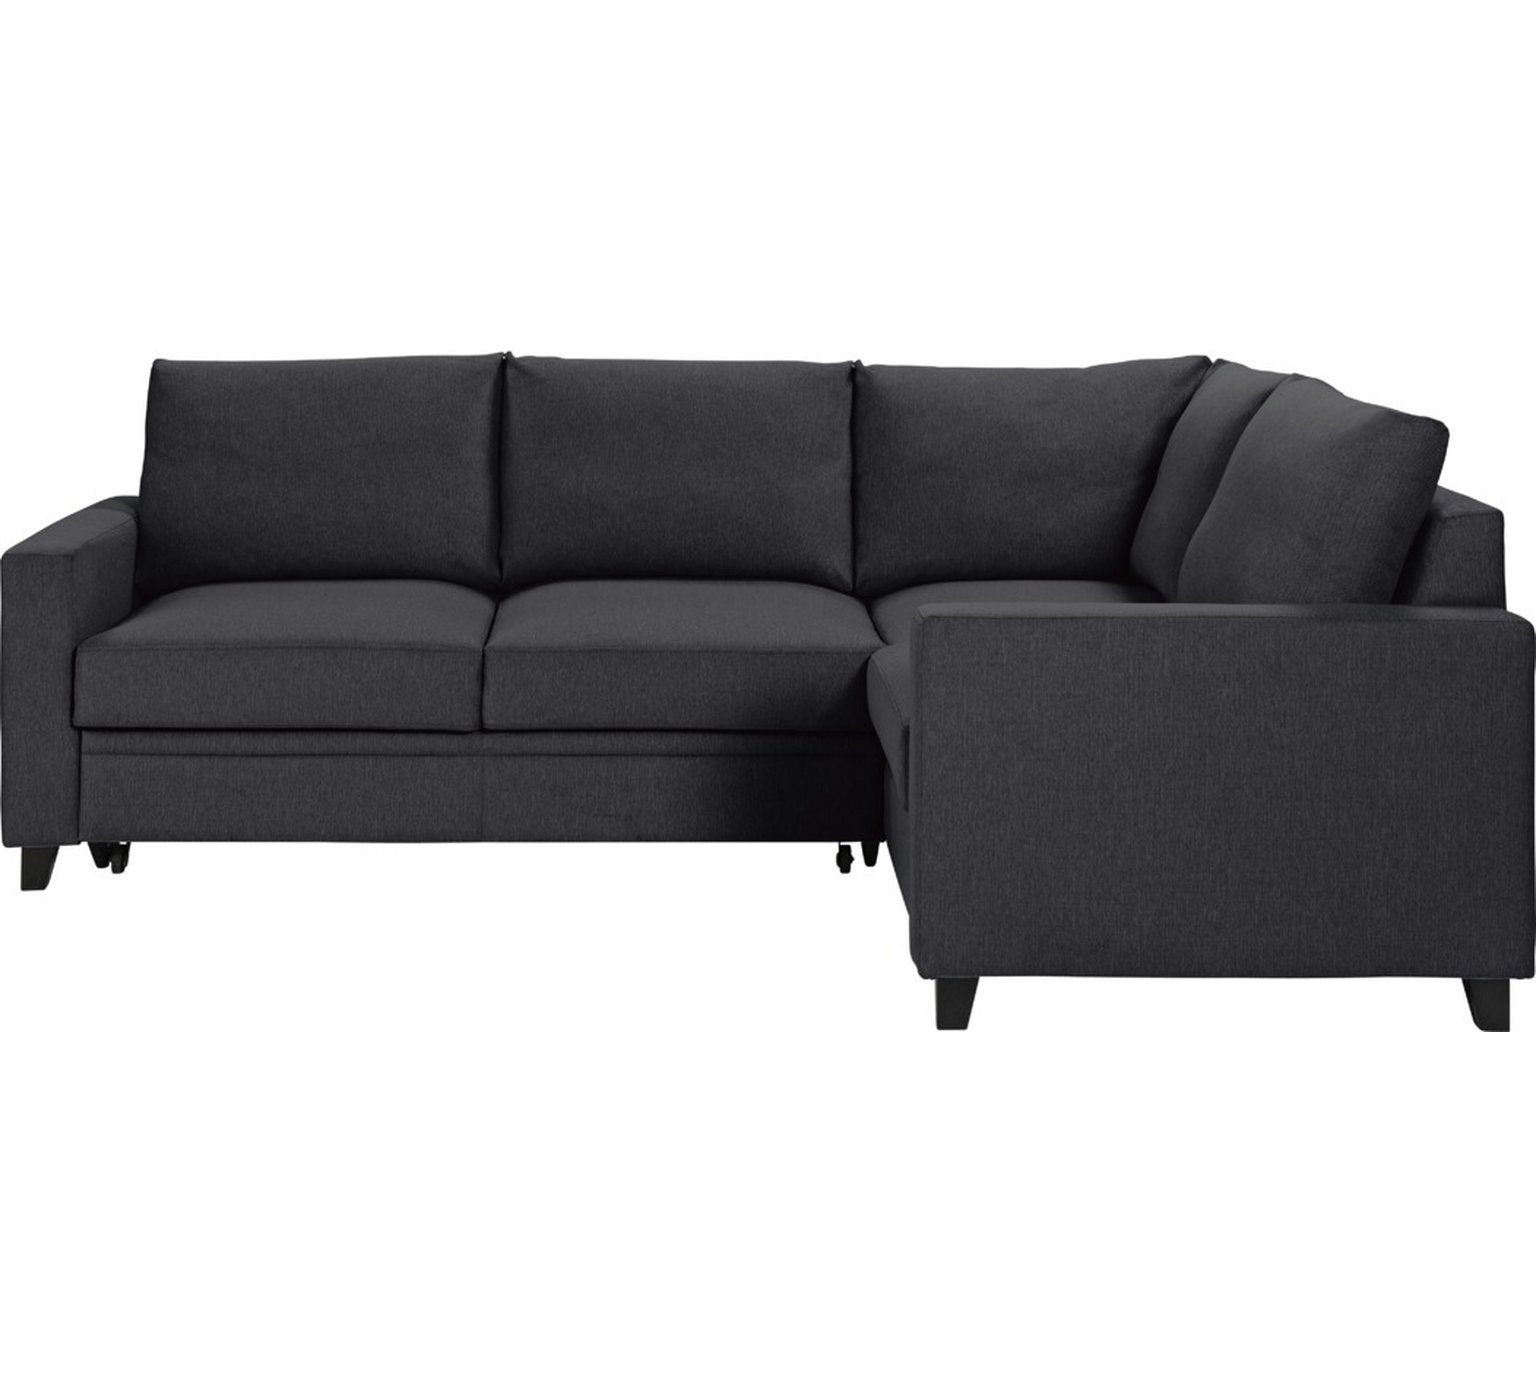 Buy Argos Home Seattle Right Corner Fabric Sofa Bed Charcoal Sofa Beds With Images Fabric Sofa Bed Charcoal Sofa Argos Home